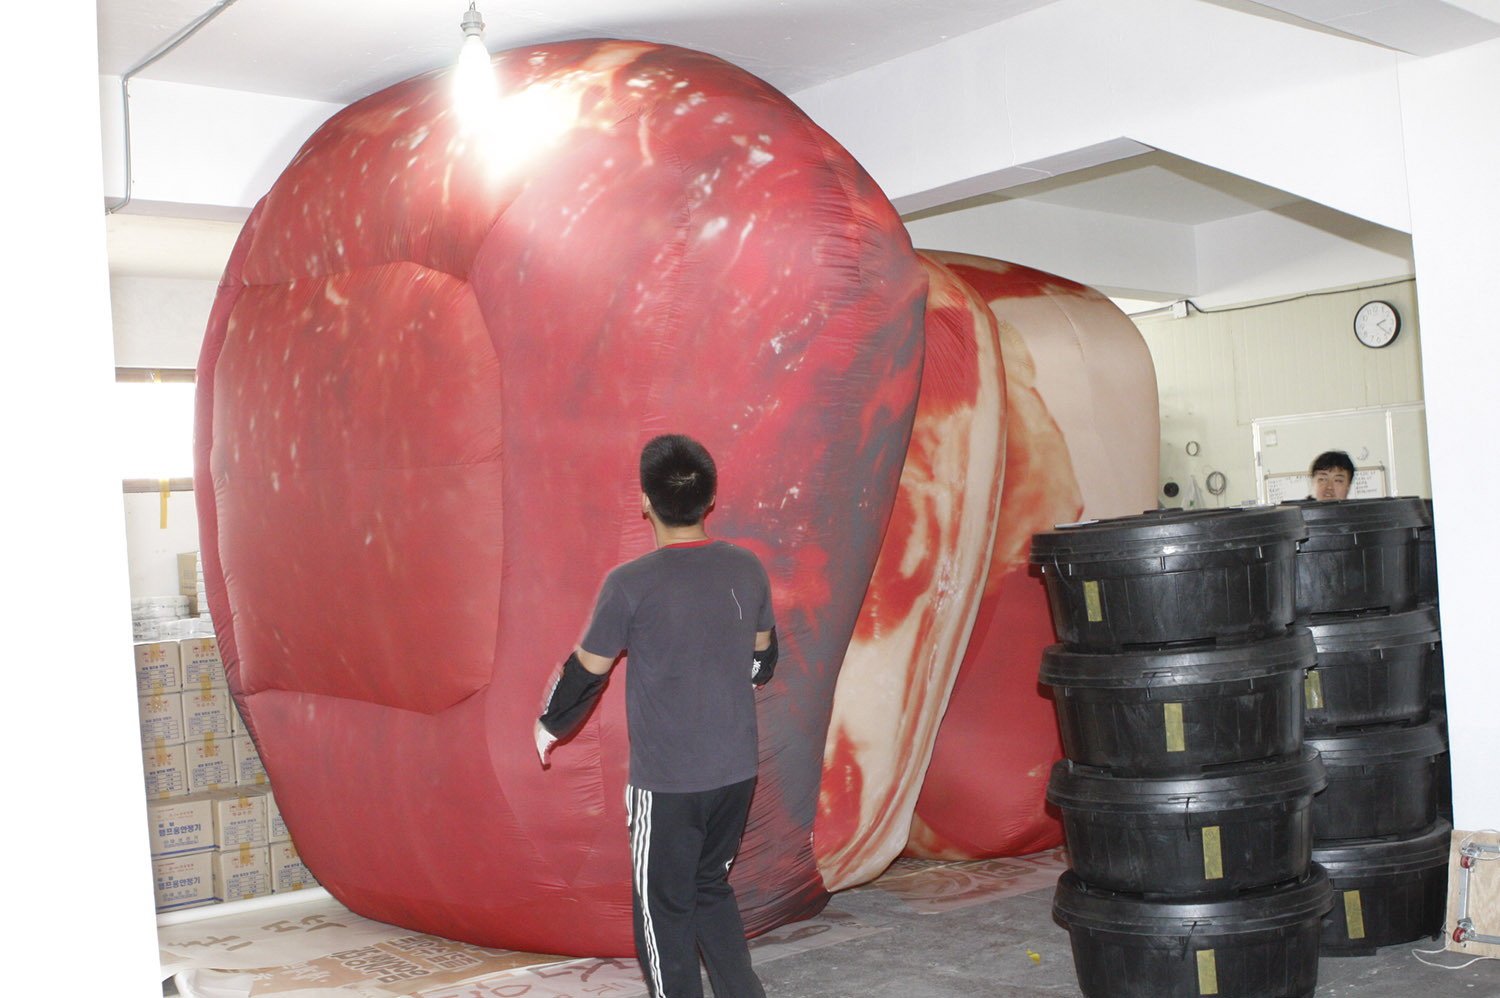 giant-bowl-inflatable-sculpture-15.jpg